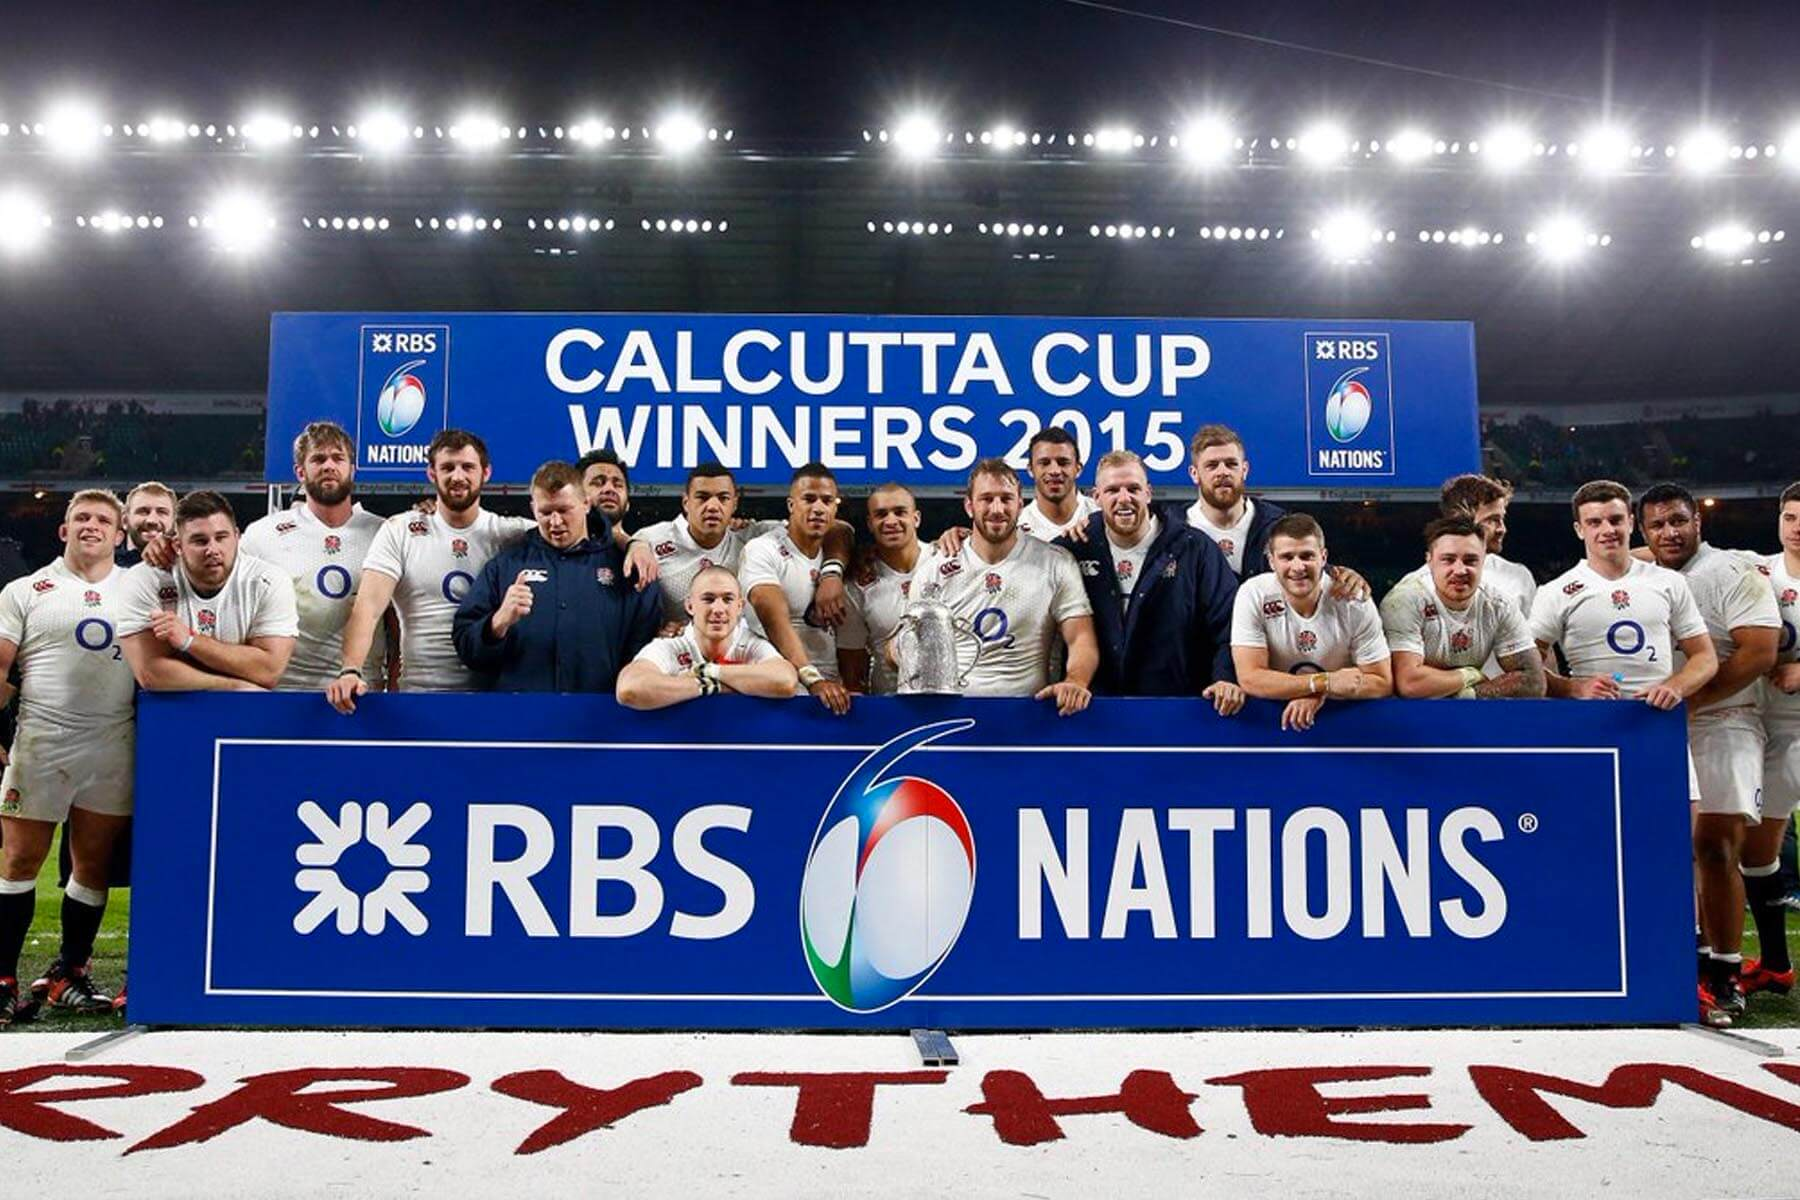 Freestanding Winners Board Hire for Calcutta Cup 2015